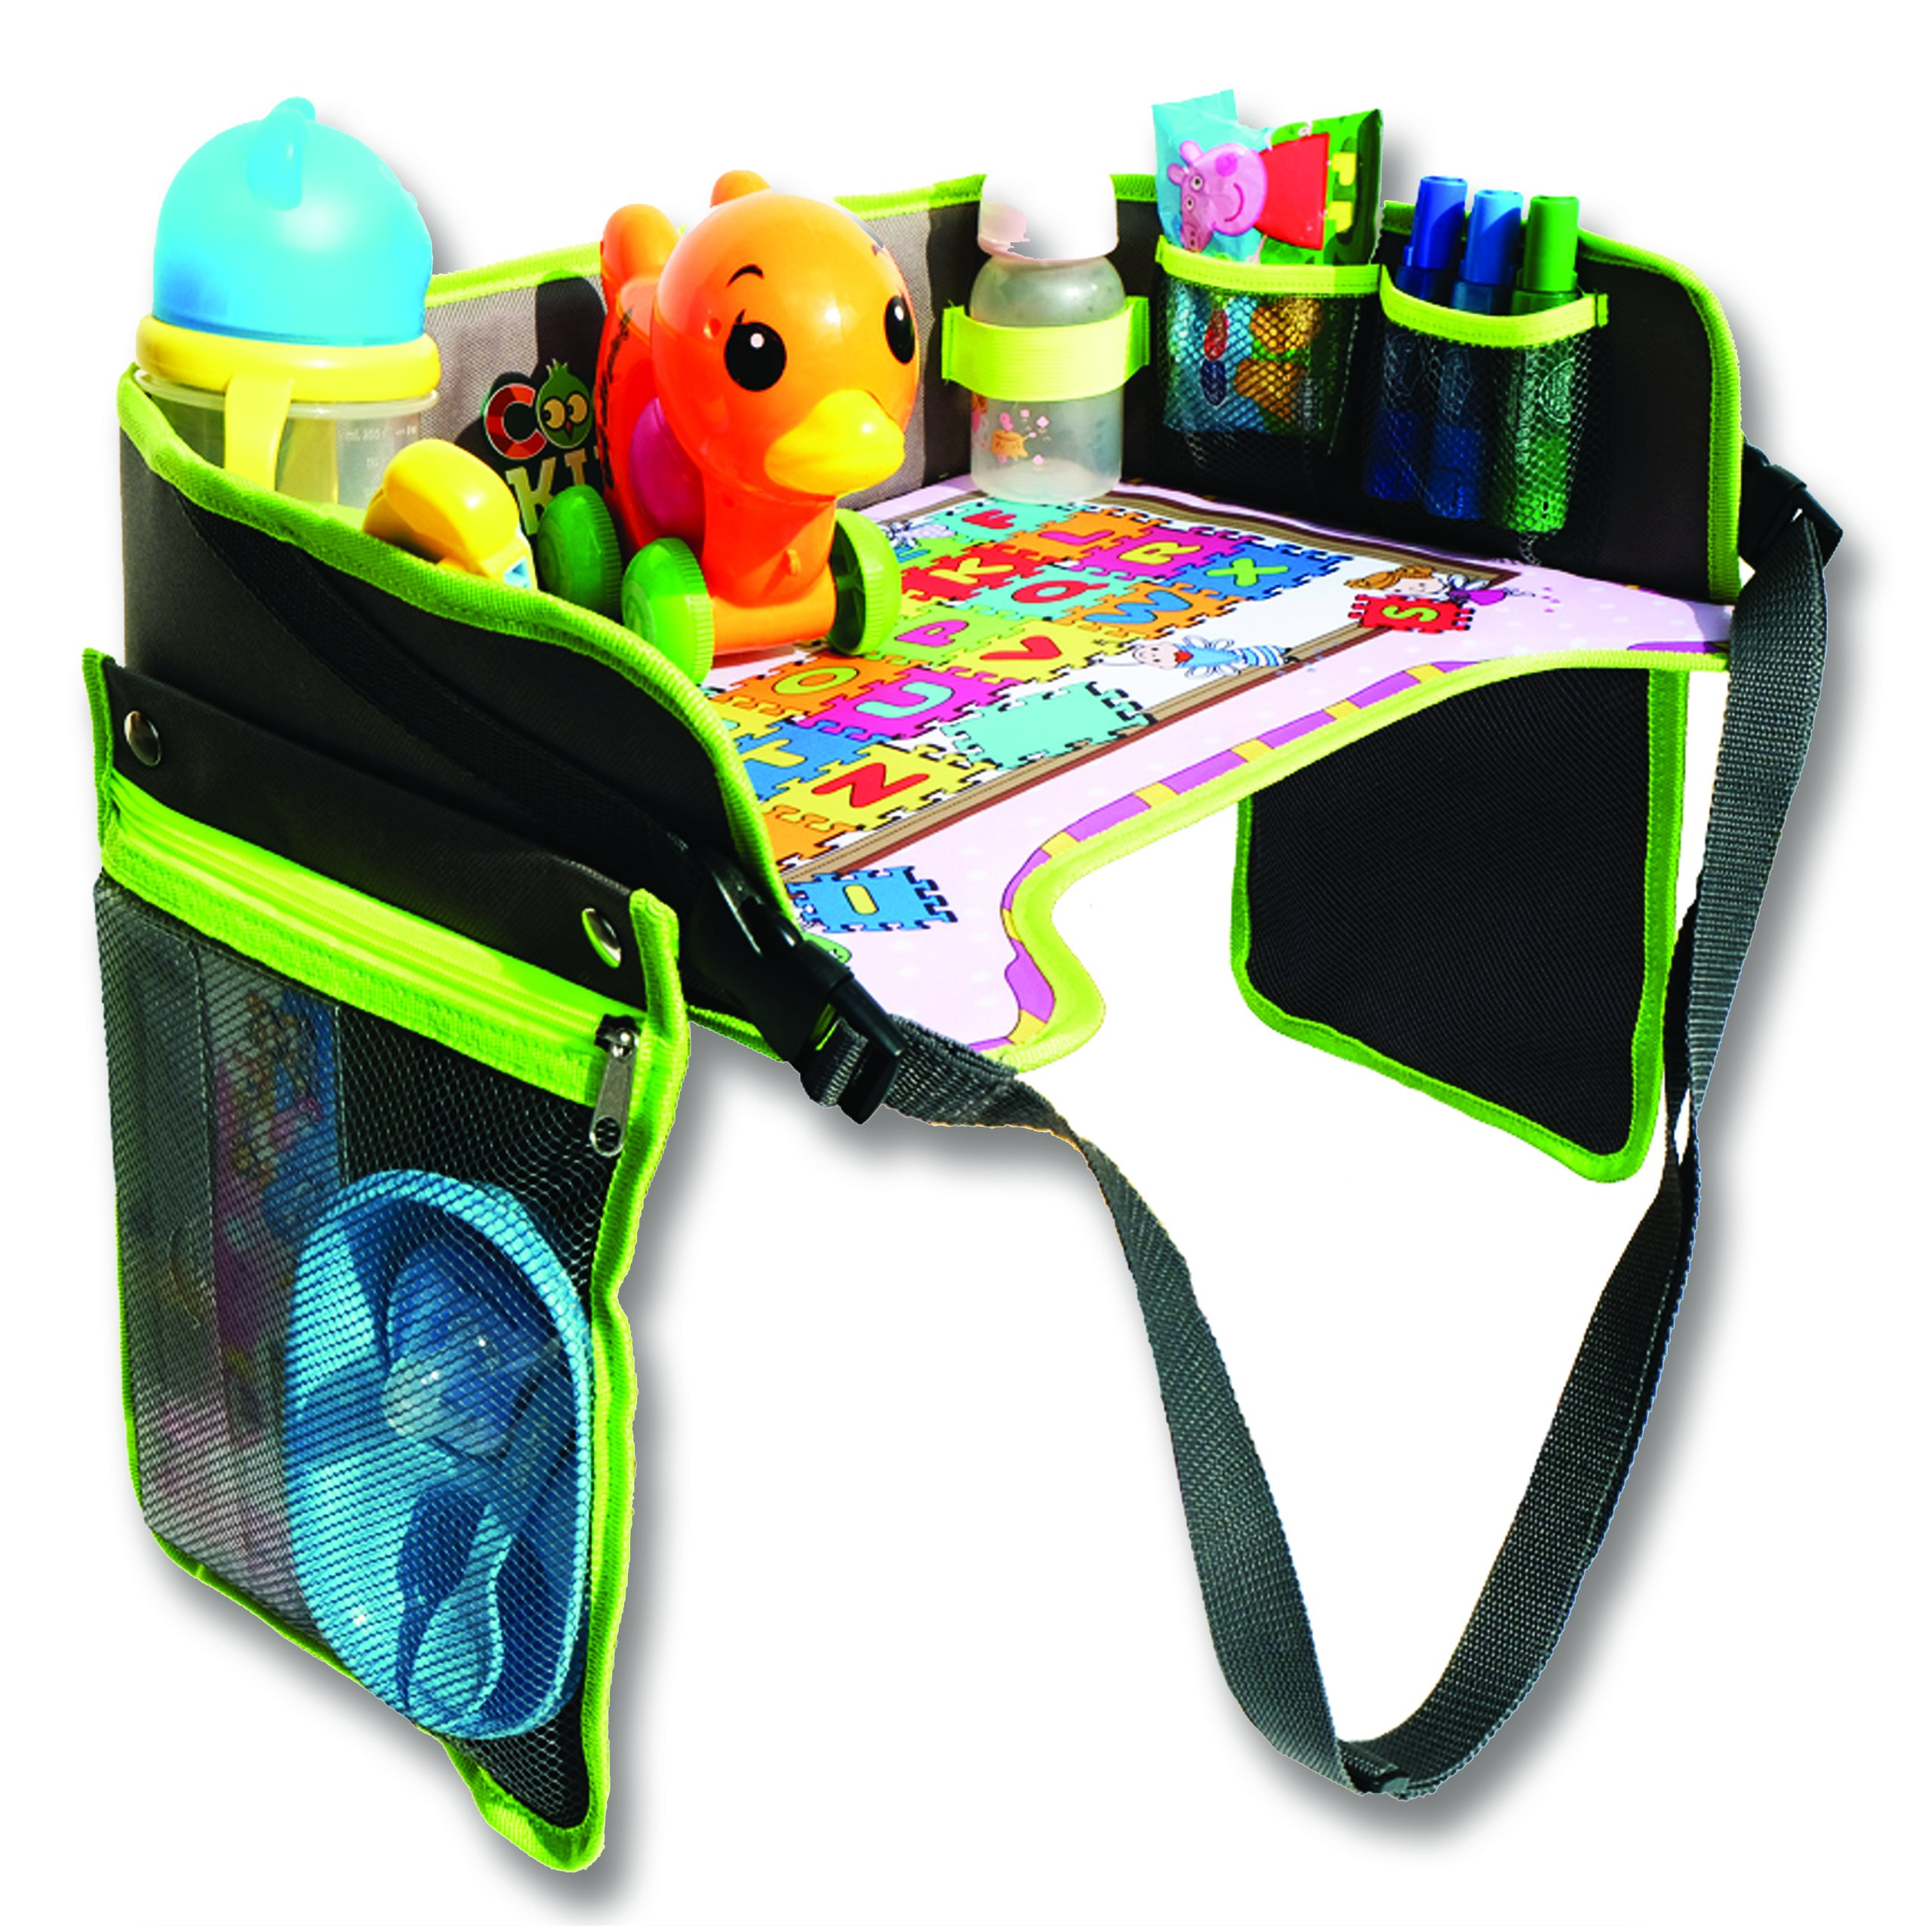 Car Seat Tray Activity Tray for Kids - They'll be Happy Travelers with Our Travel Organizer Tray - Easy to Clean, Waterproof, Cup Holder, Sturdy Enough for Coloring by Cool Kids